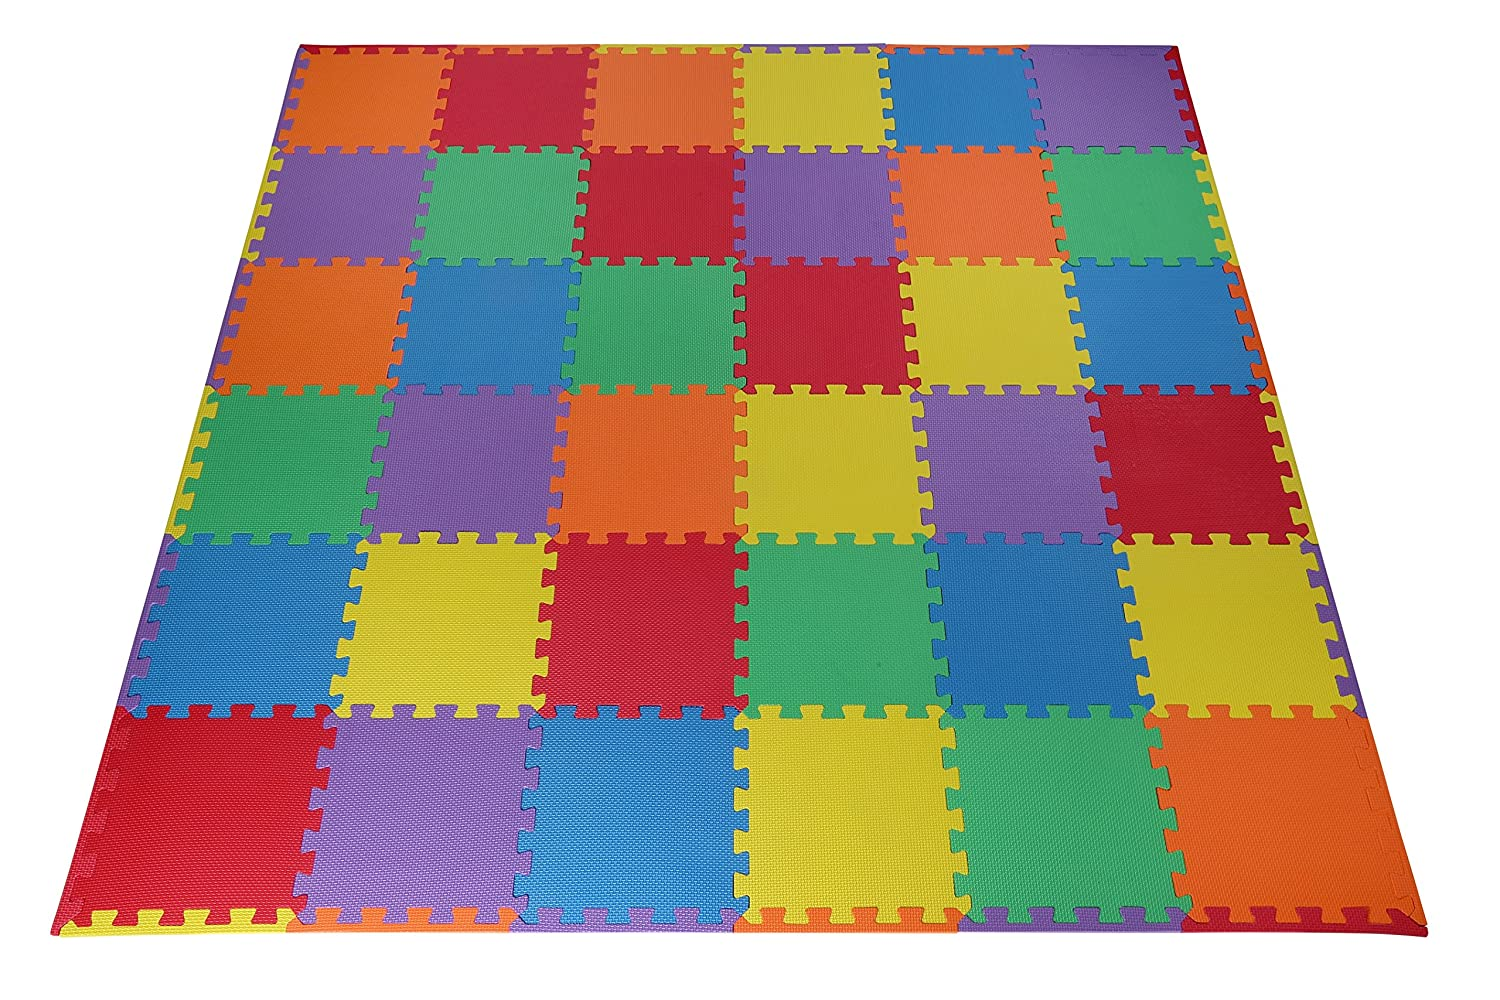 Amazon toydaloo eva foam play mat blank 36 pieces 24 amazon toydaloo eva foam play mat blank 36 pieces 24 borders non toxic multicolored colorful toys games dailygadgetfo Image collections